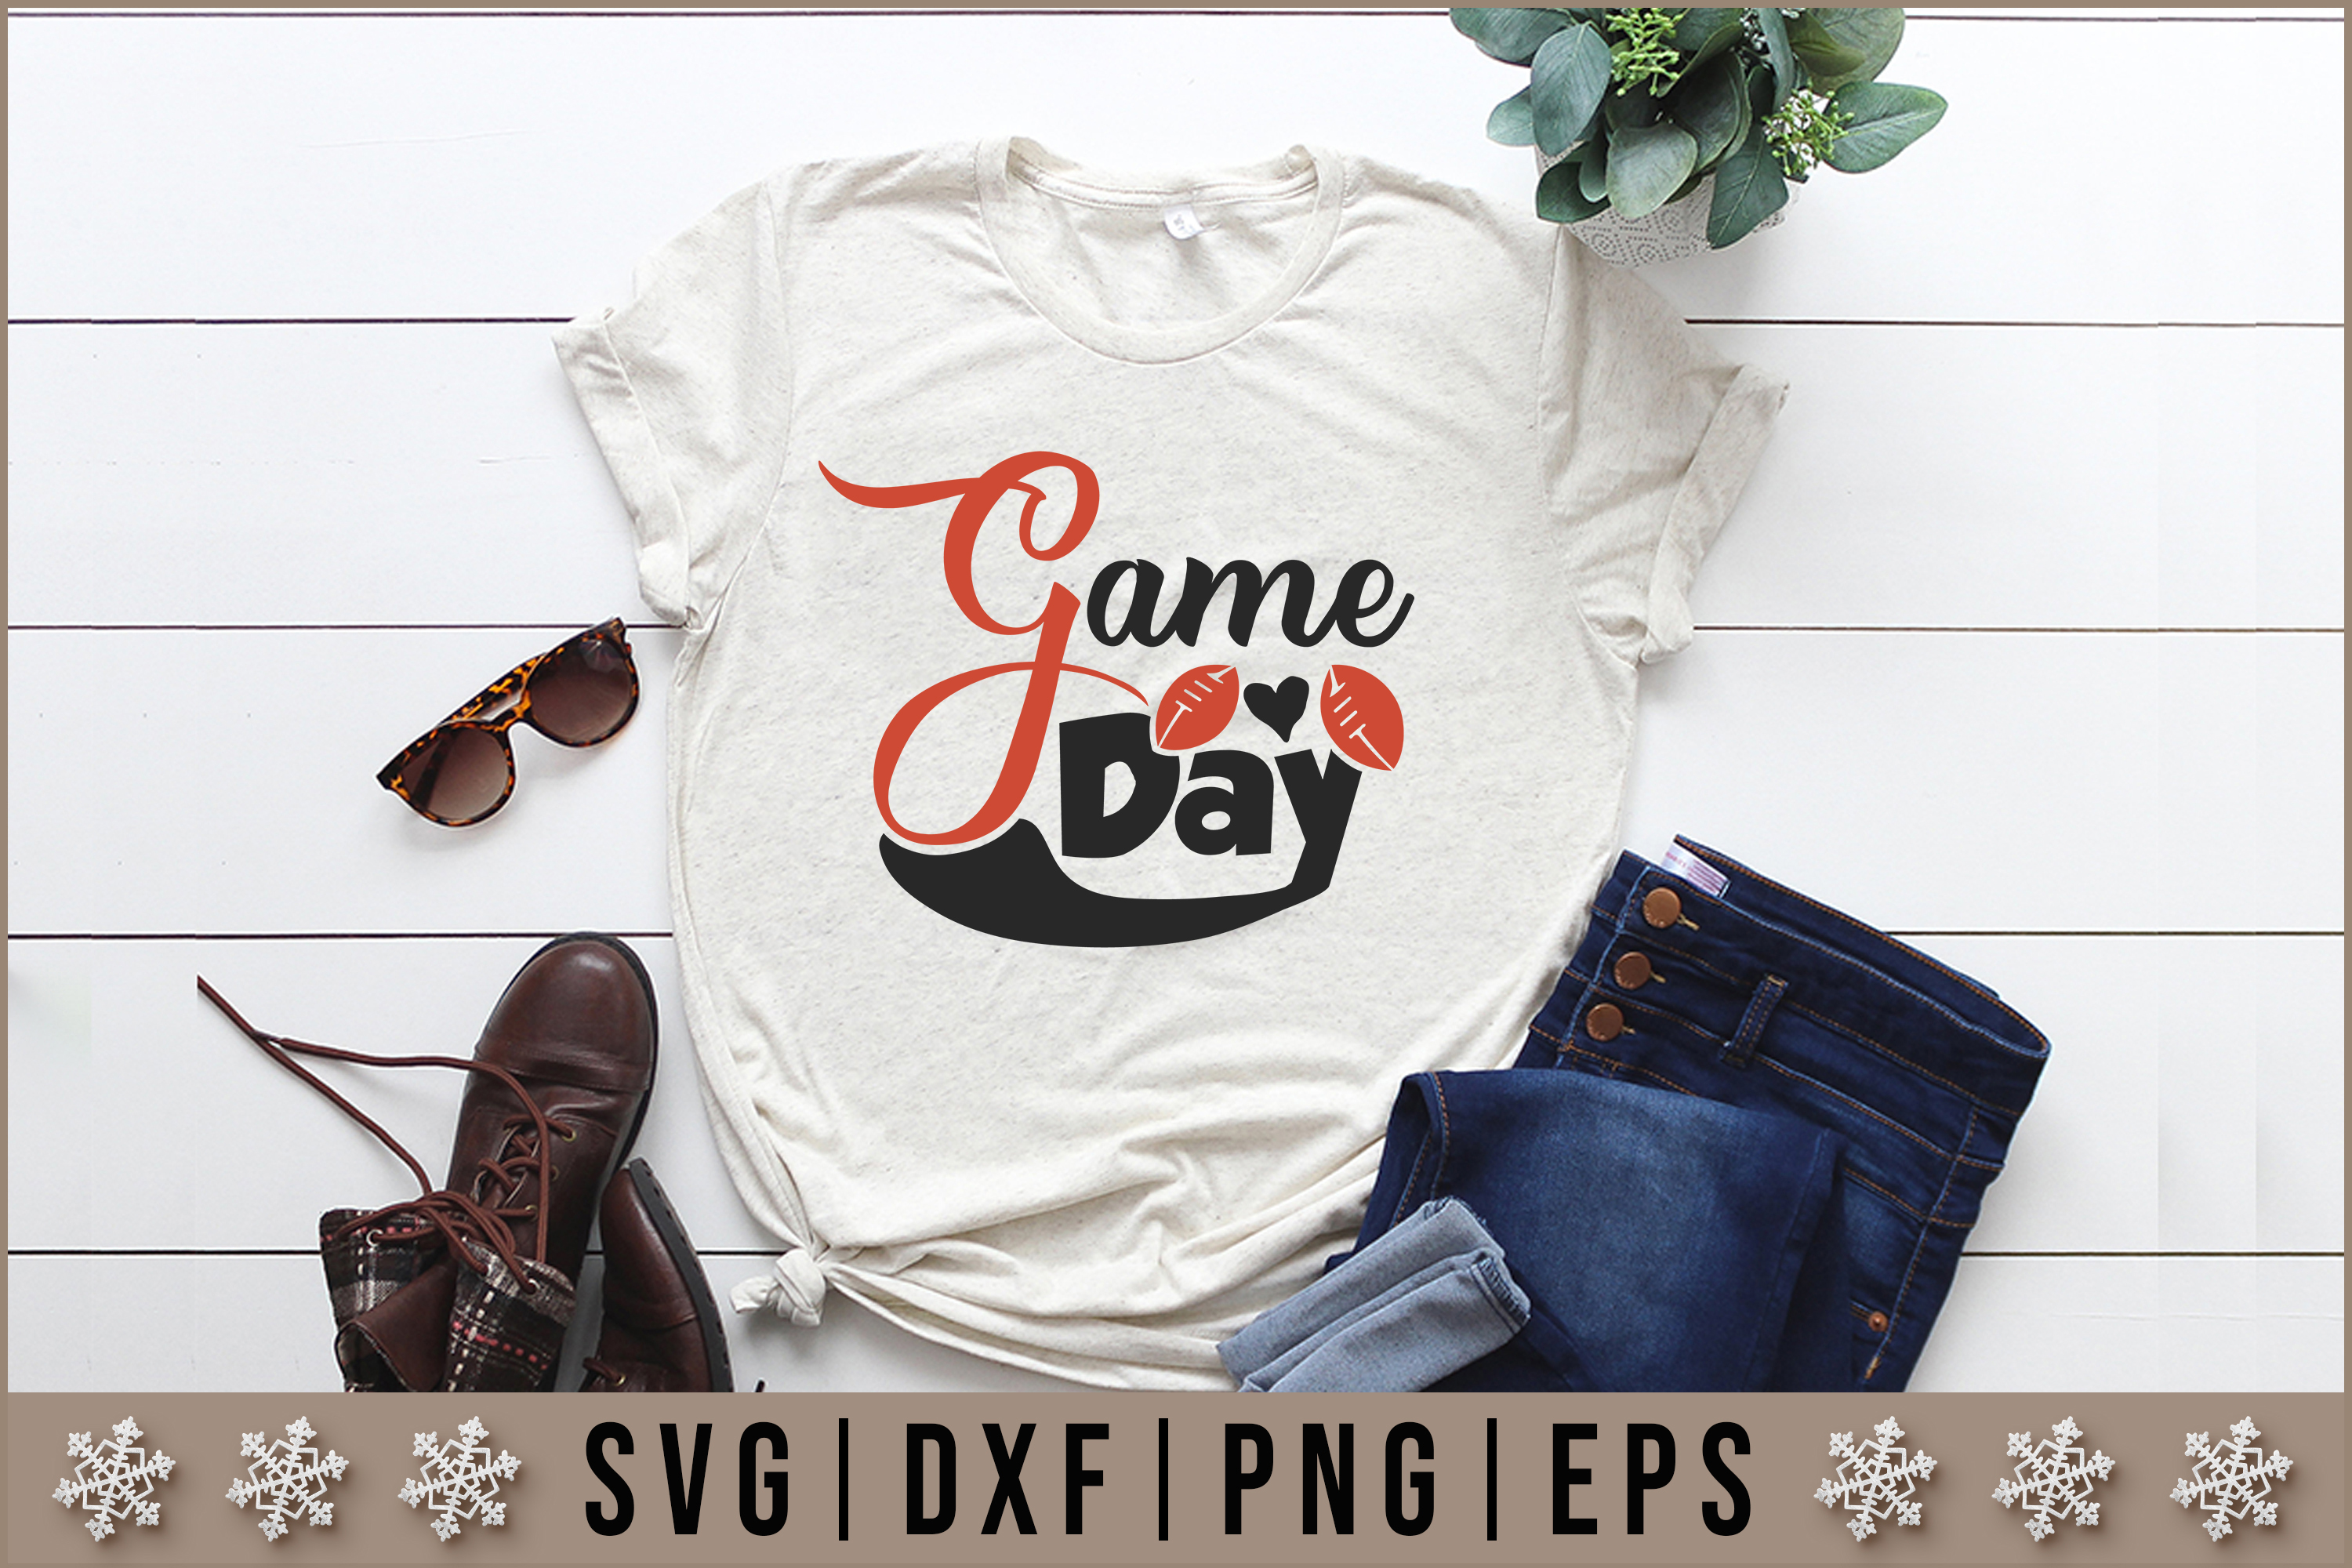 Game Day Quotes SVG Design example image 1